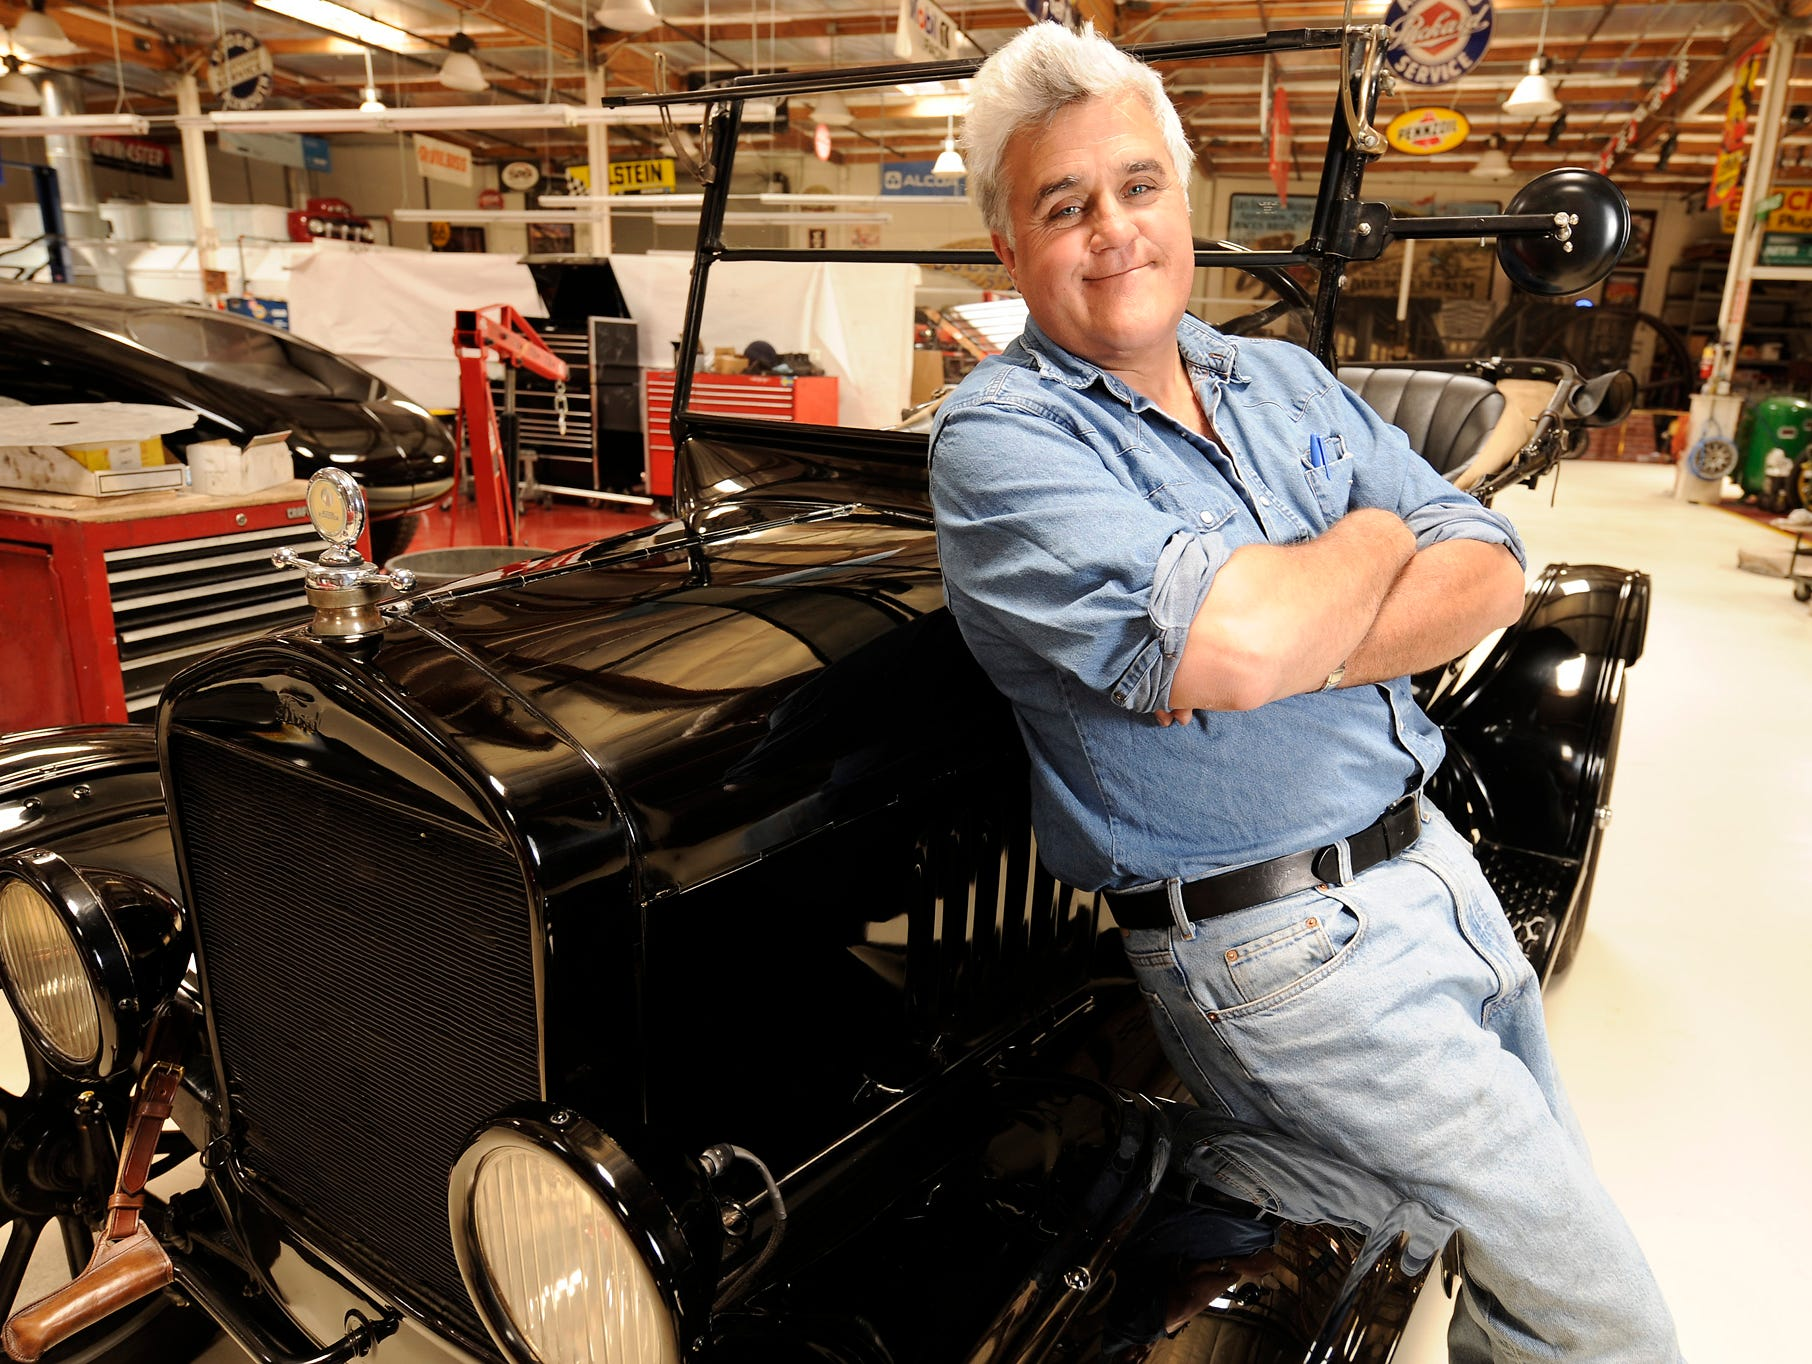 Talk show host Jay Leno poses with his 1925 Ford Model T Roadster on June 23, 2008, in Burbank, Calif.